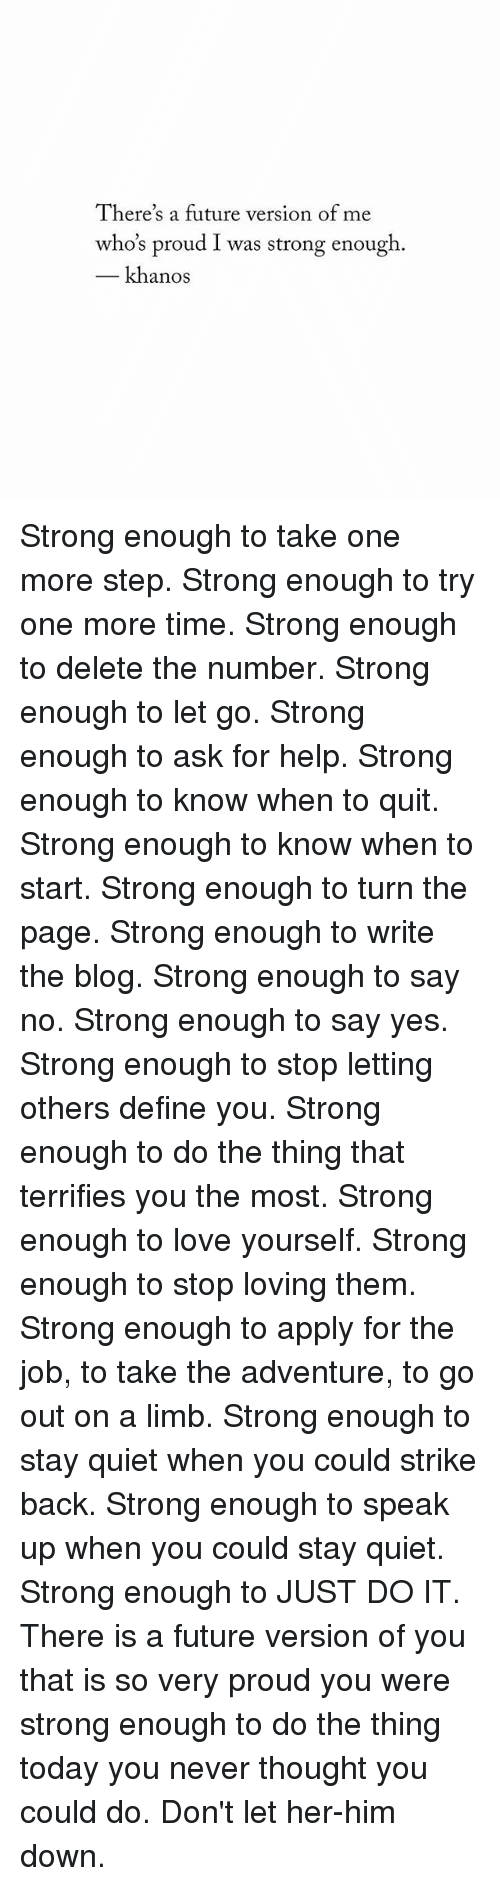 strike back: There's a future version of me  who's proud I was strong enough.  khanos Strong enough to take one more step. Strong enough to try one more time. Strong enough to delete the number. Strong enough to let go. Strong enough to ask for help. Strong enough to know when to quit. Strong enough to know when to start. Strong enough to turn the page. Strong enough to write the blog. Strong enough to say no. Strong enough to say yes. Strong enough to stop letting others define you. Strong enough to do the thing that terrifies you the most. Strong enough to love yourself. Strong enough to stop loving them. Strong enough to apply for the job, to take the adventure, to go out on a limb. Strong enough to stay quiet when you could strike back. Strong enough to speak up when you could stay quiet. Strong enough to JUST DO IT. There is a future version of you that is so very proud you were strong enough to do the thing today you never thought you could do. Don't let her-him down.